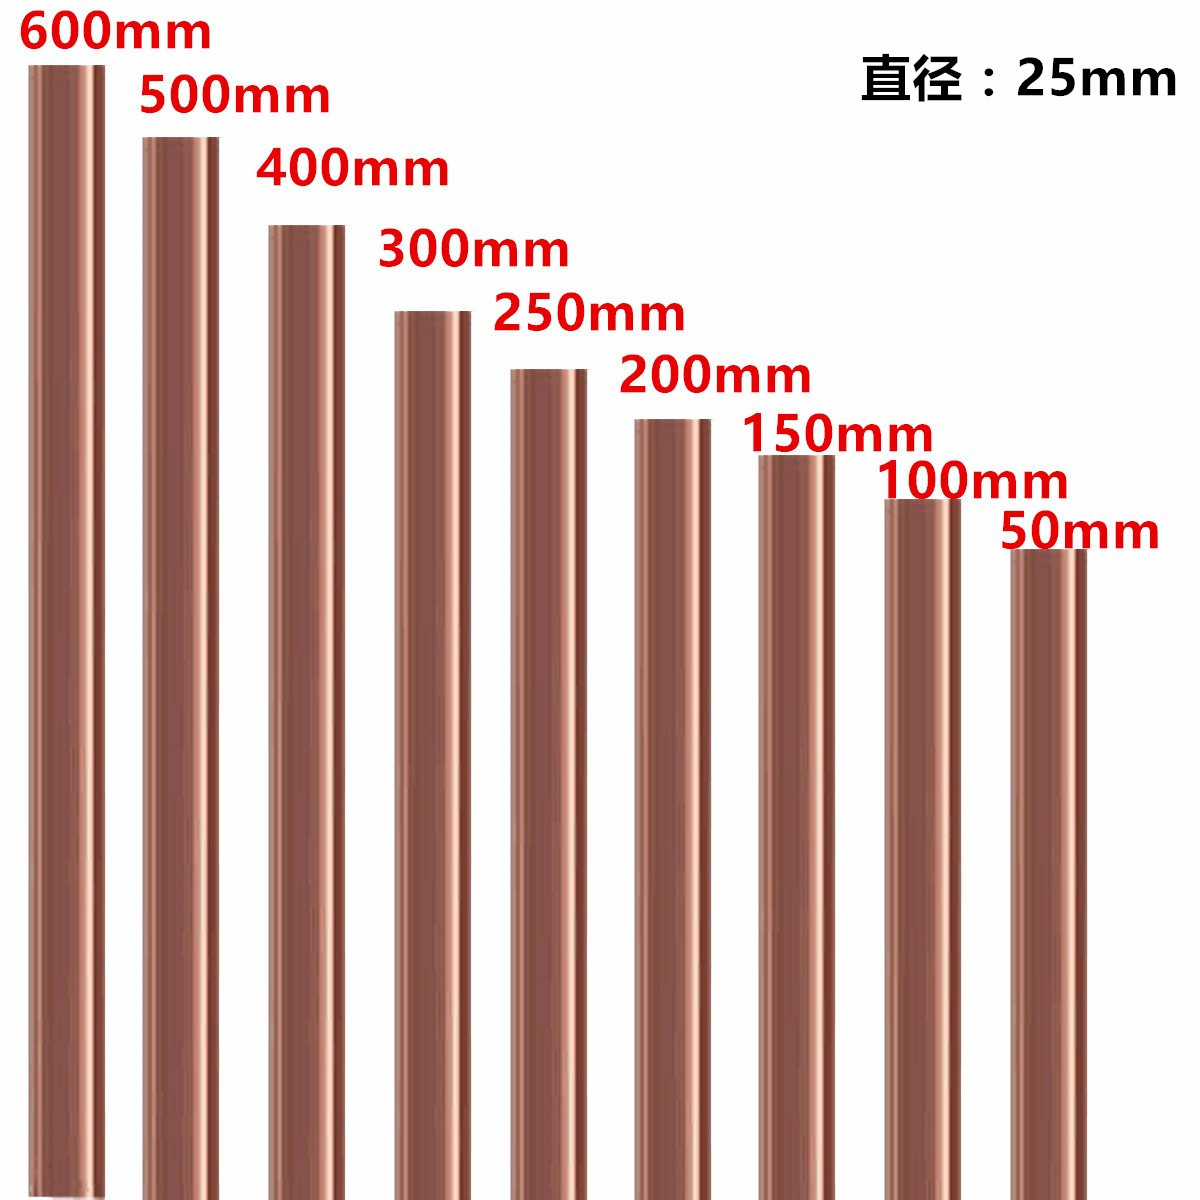 25mm Diameter 50mm Length Copper Rod Round Bar For Metalworking